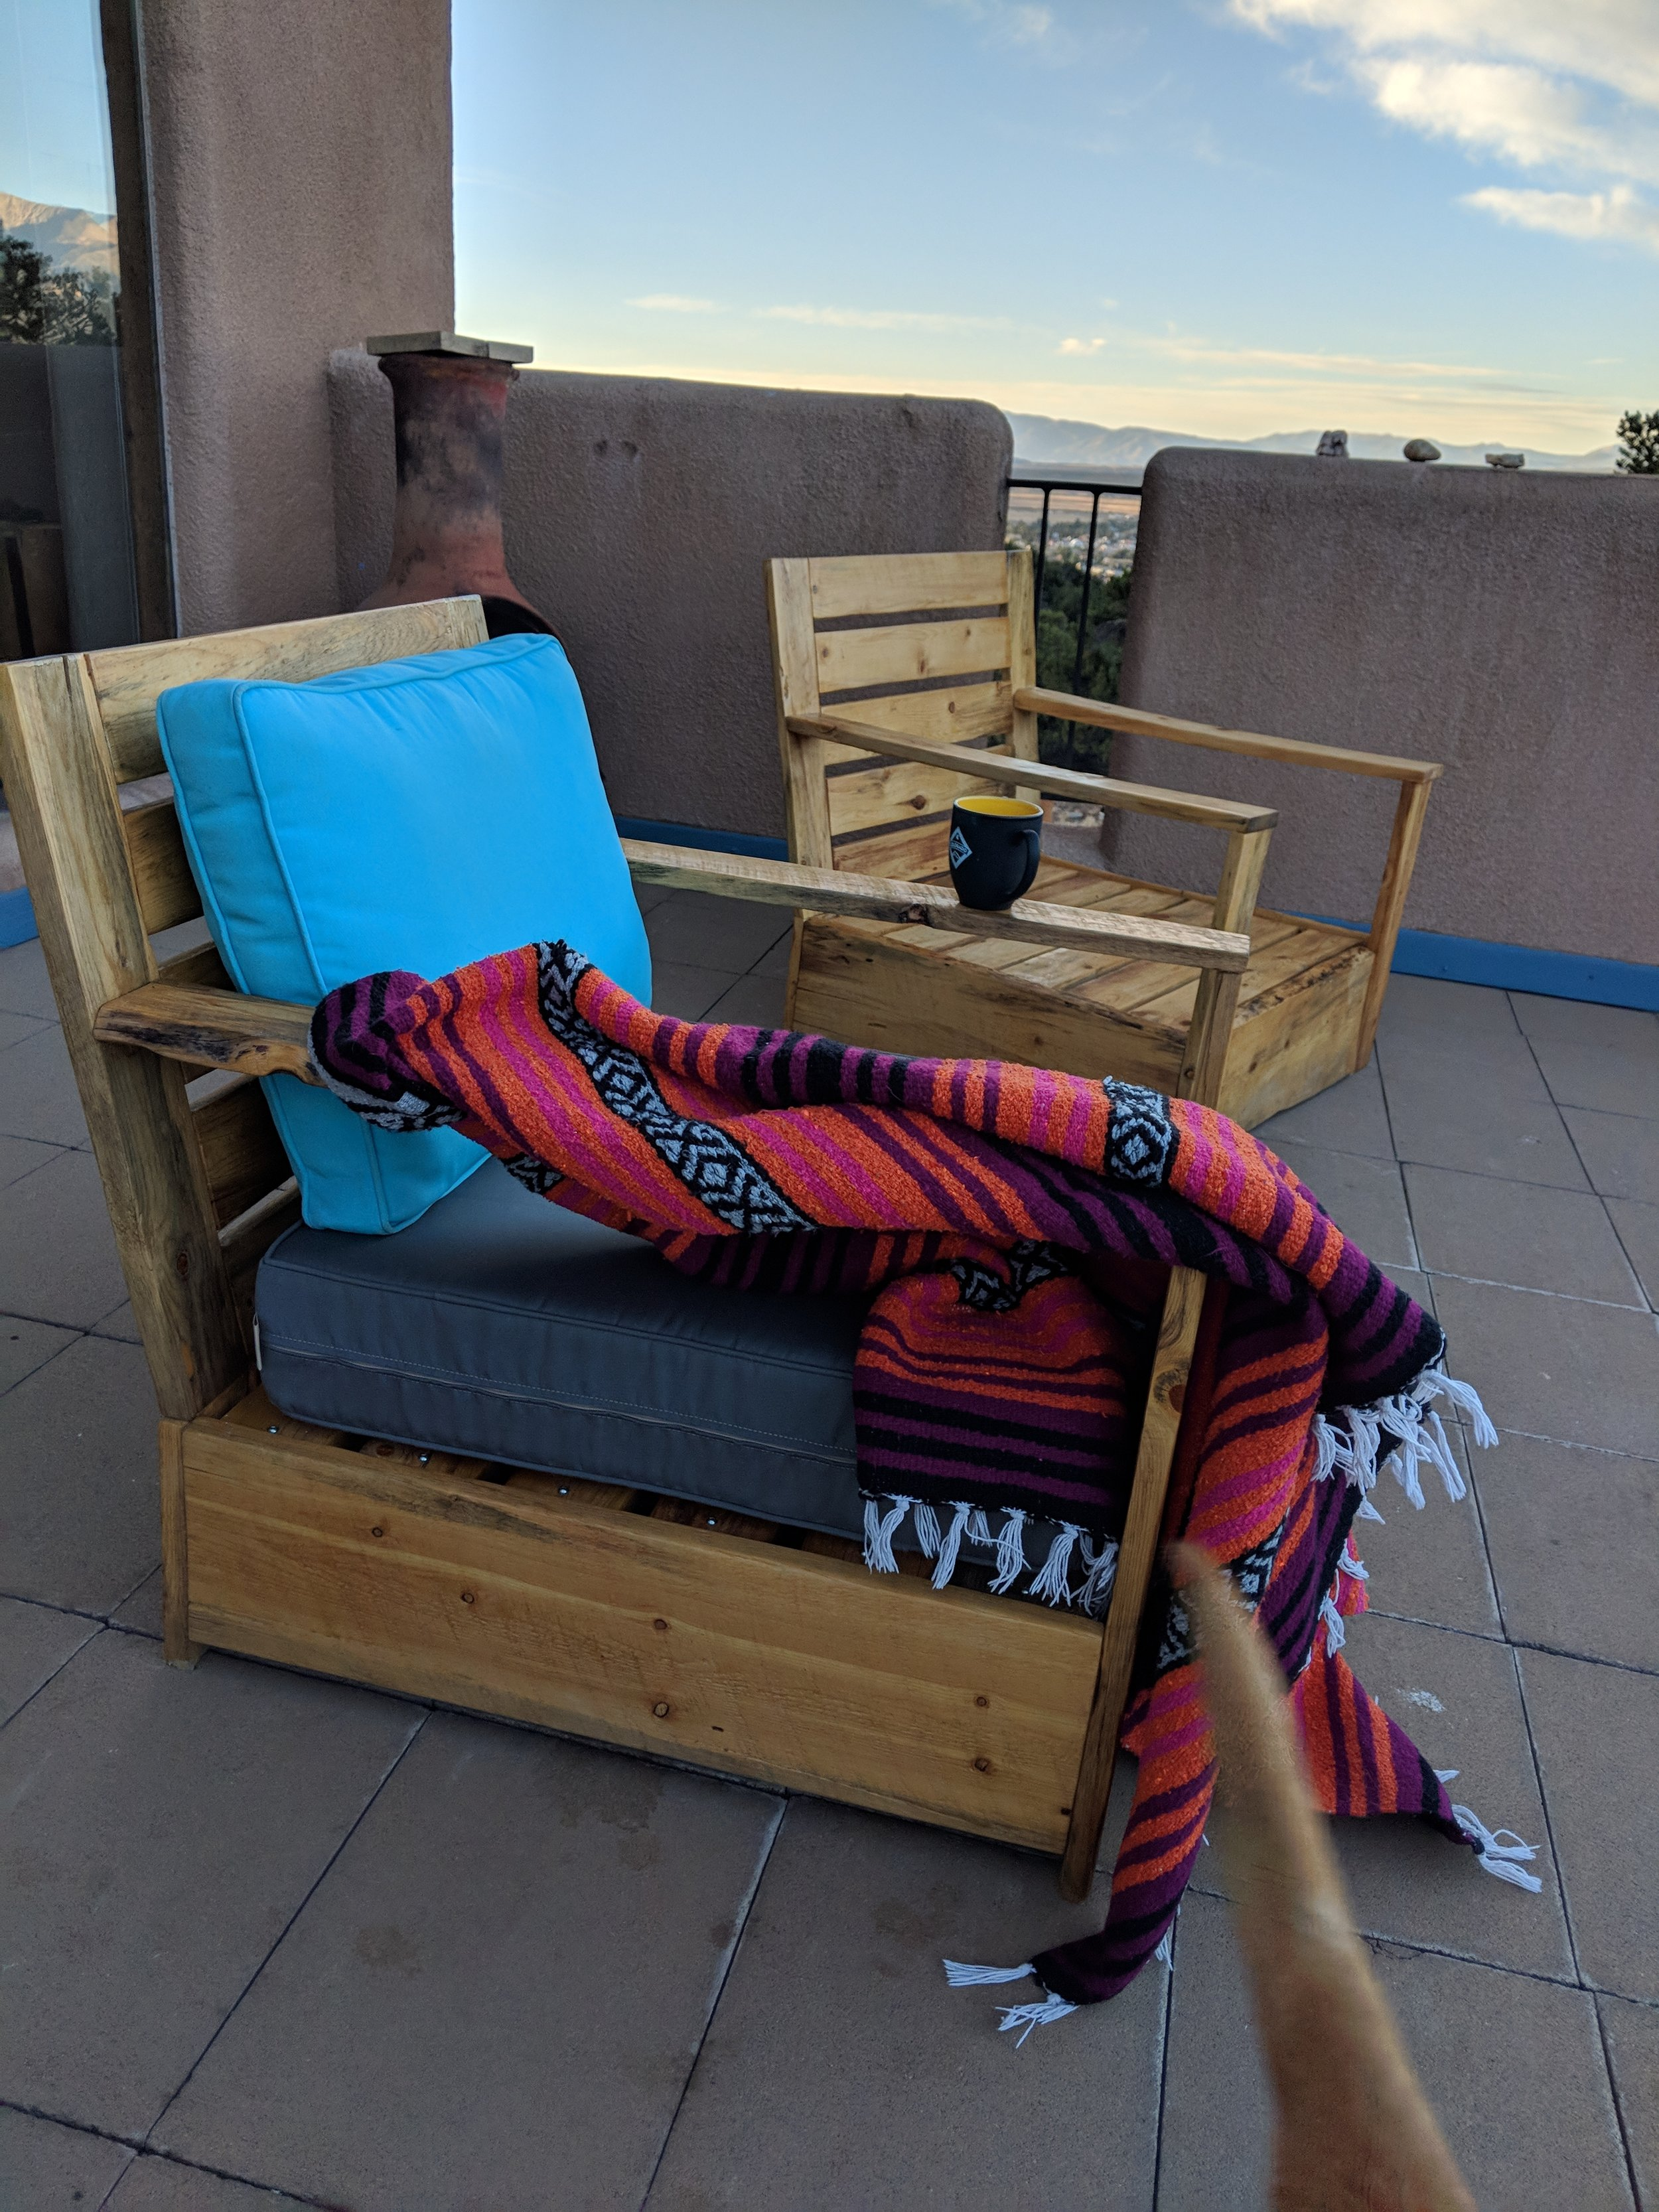 Chair with blankets.jpg